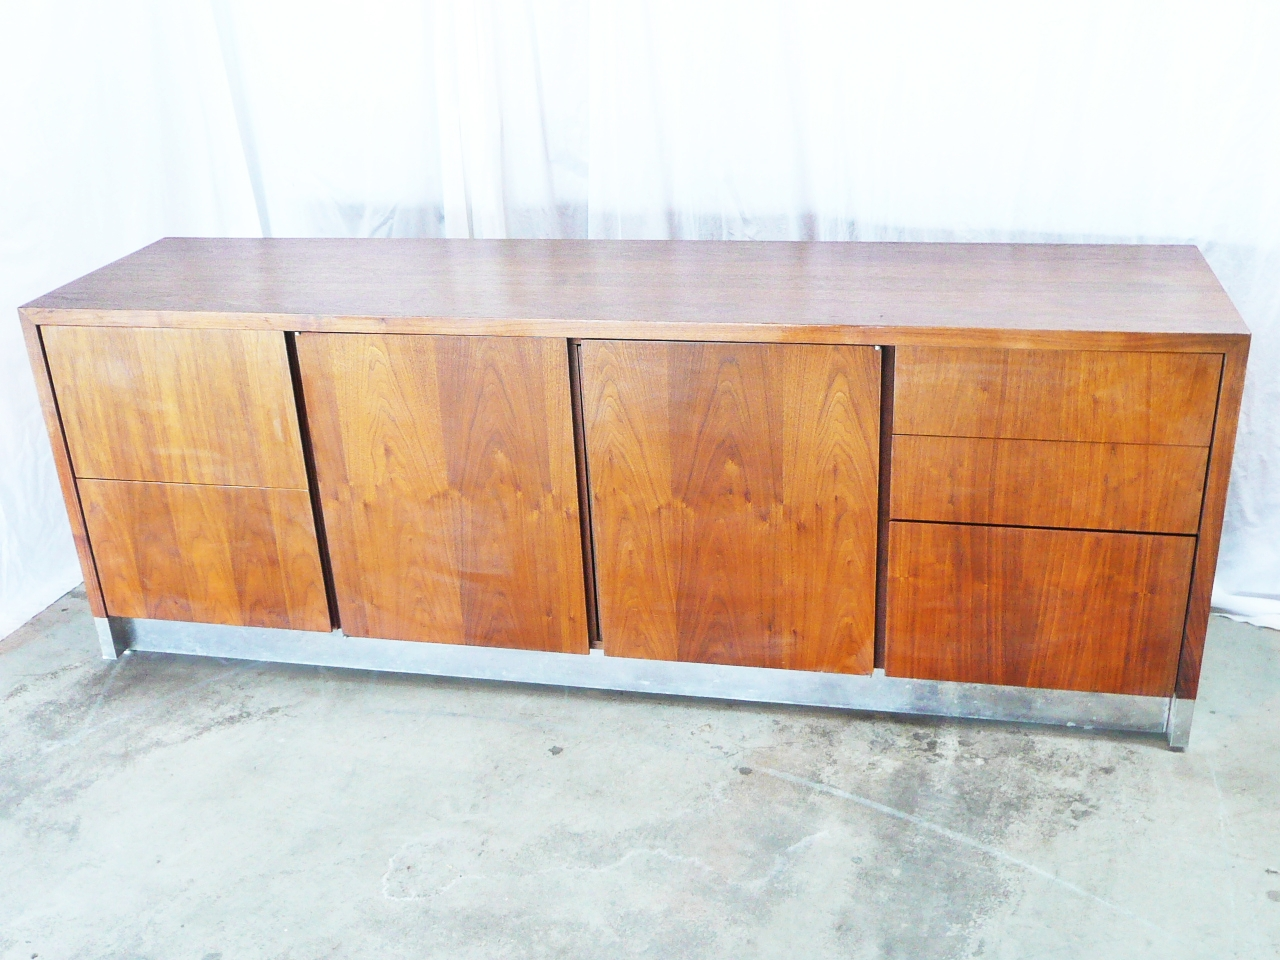 Just In 4 11 13 Modern Office Furniture Credenenza Mid Century Lane Tables